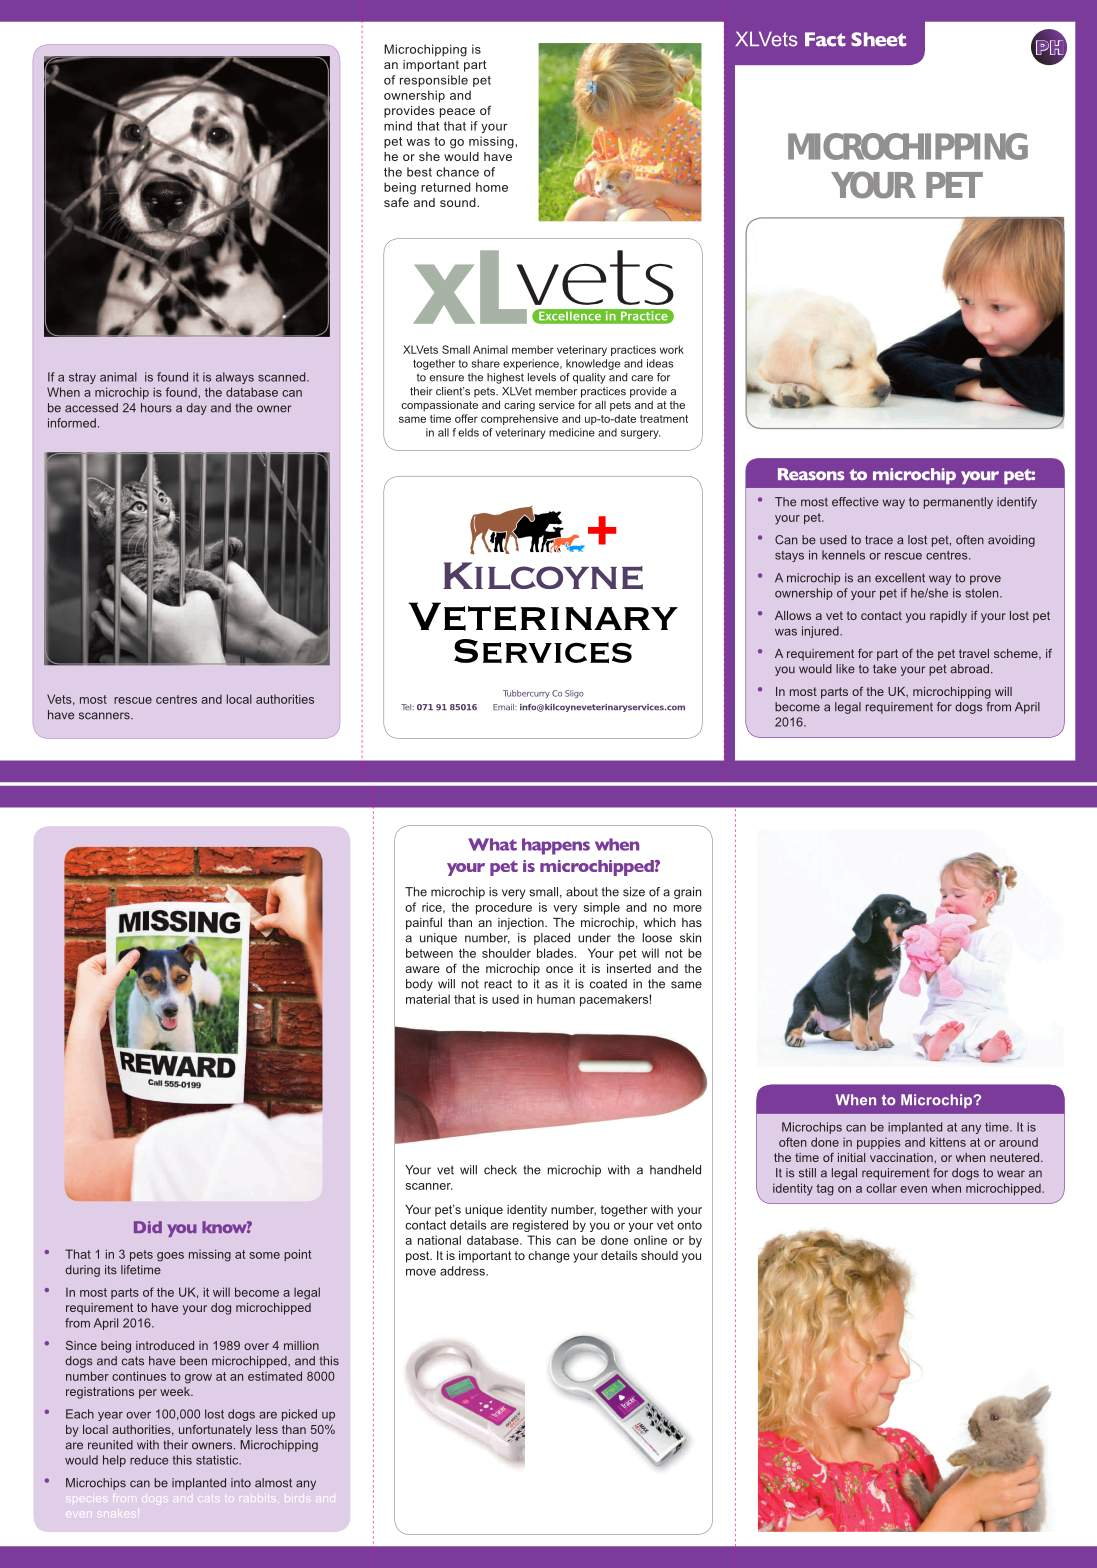 kilcoyne_veterinary_services_XLVets_Factsheet_Microchipping